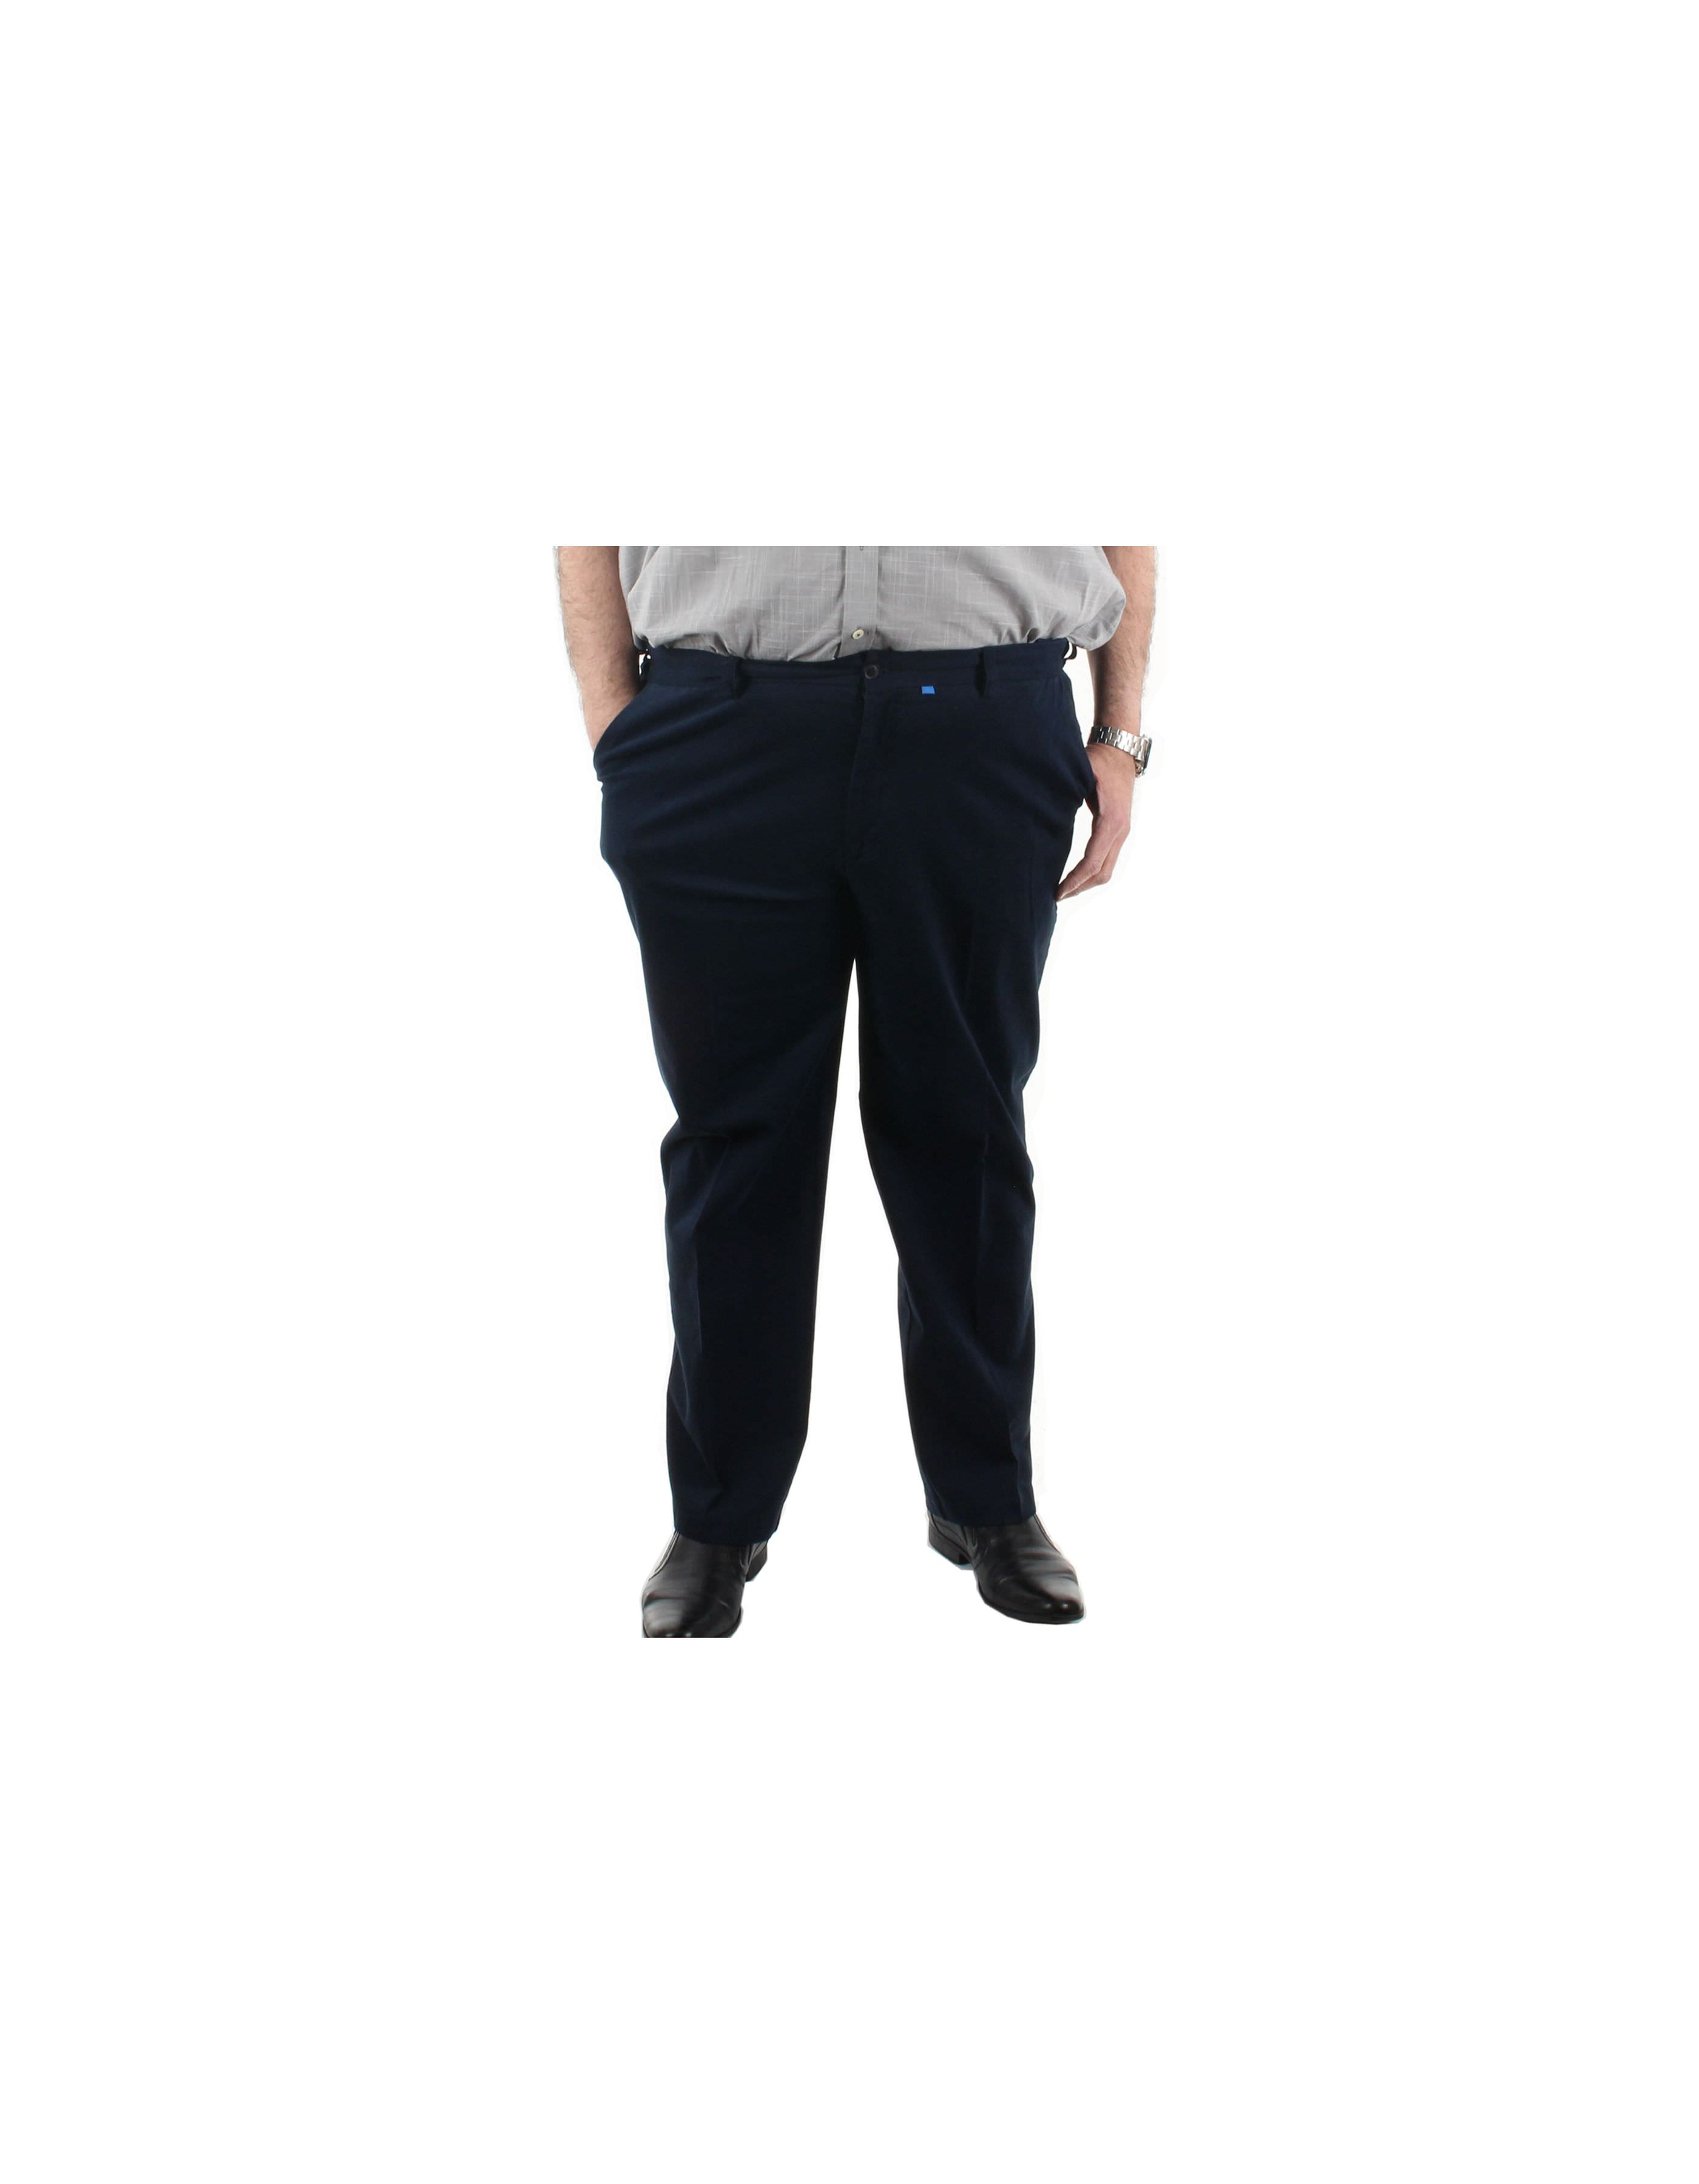 Chino strech taille extensible